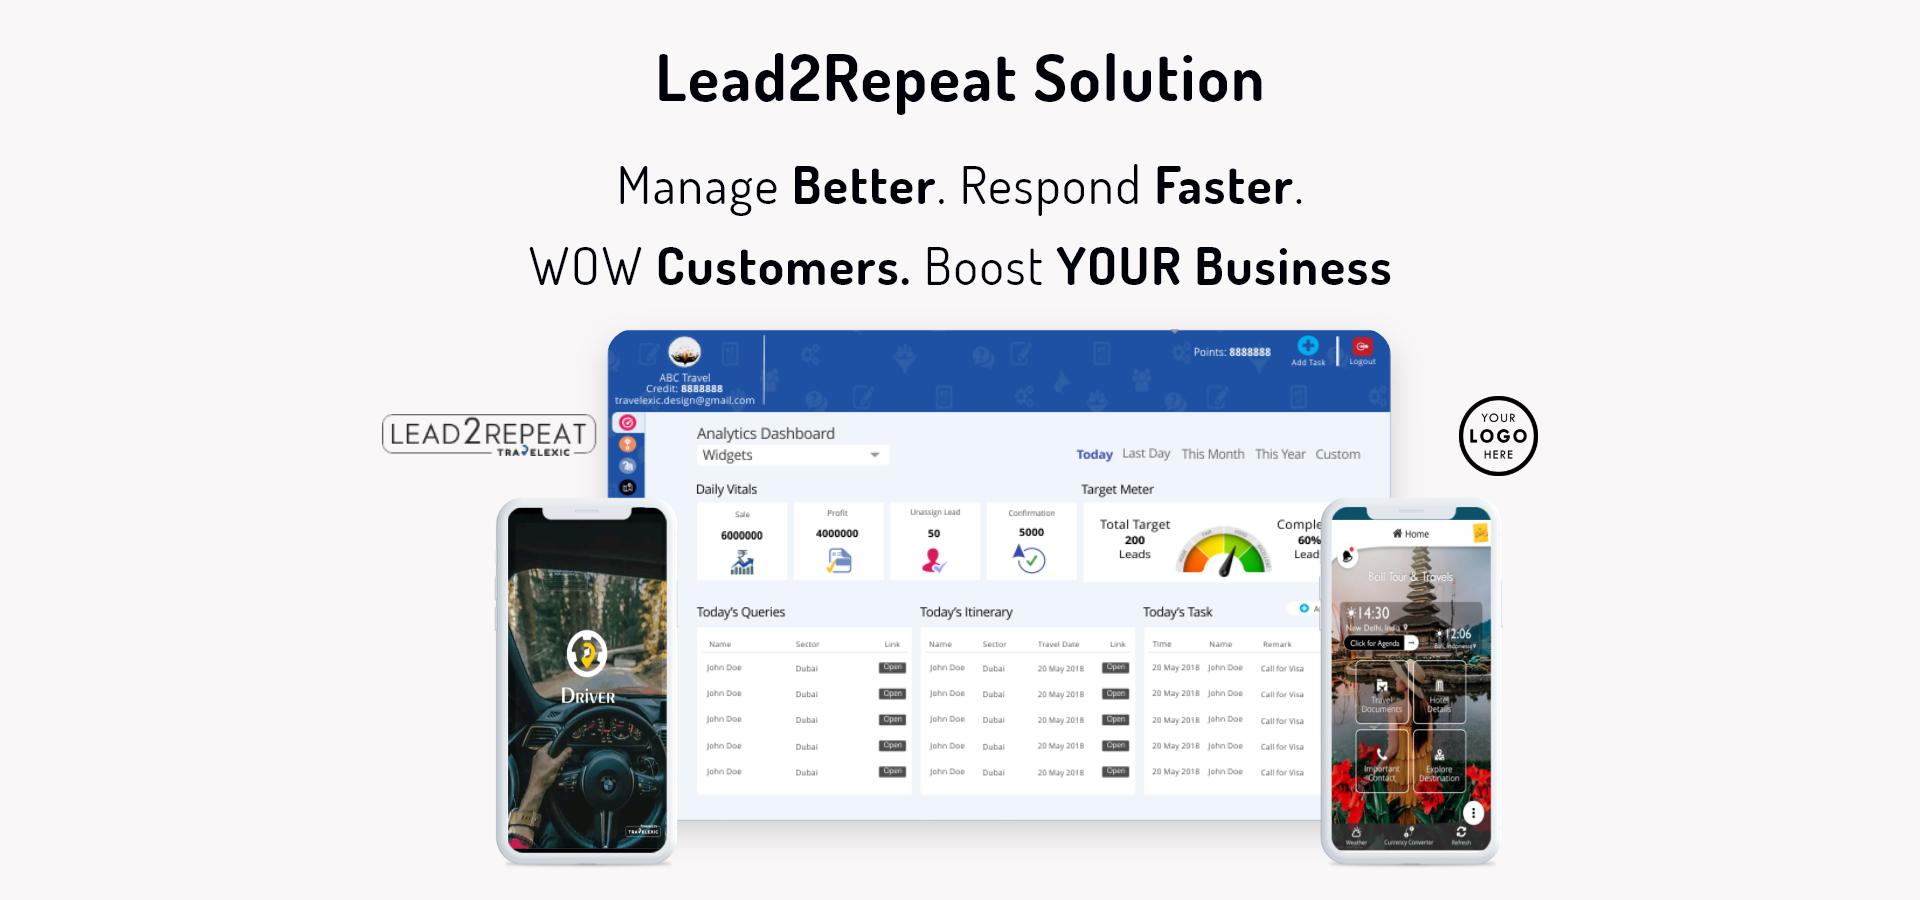 Lead2Repeat Solution